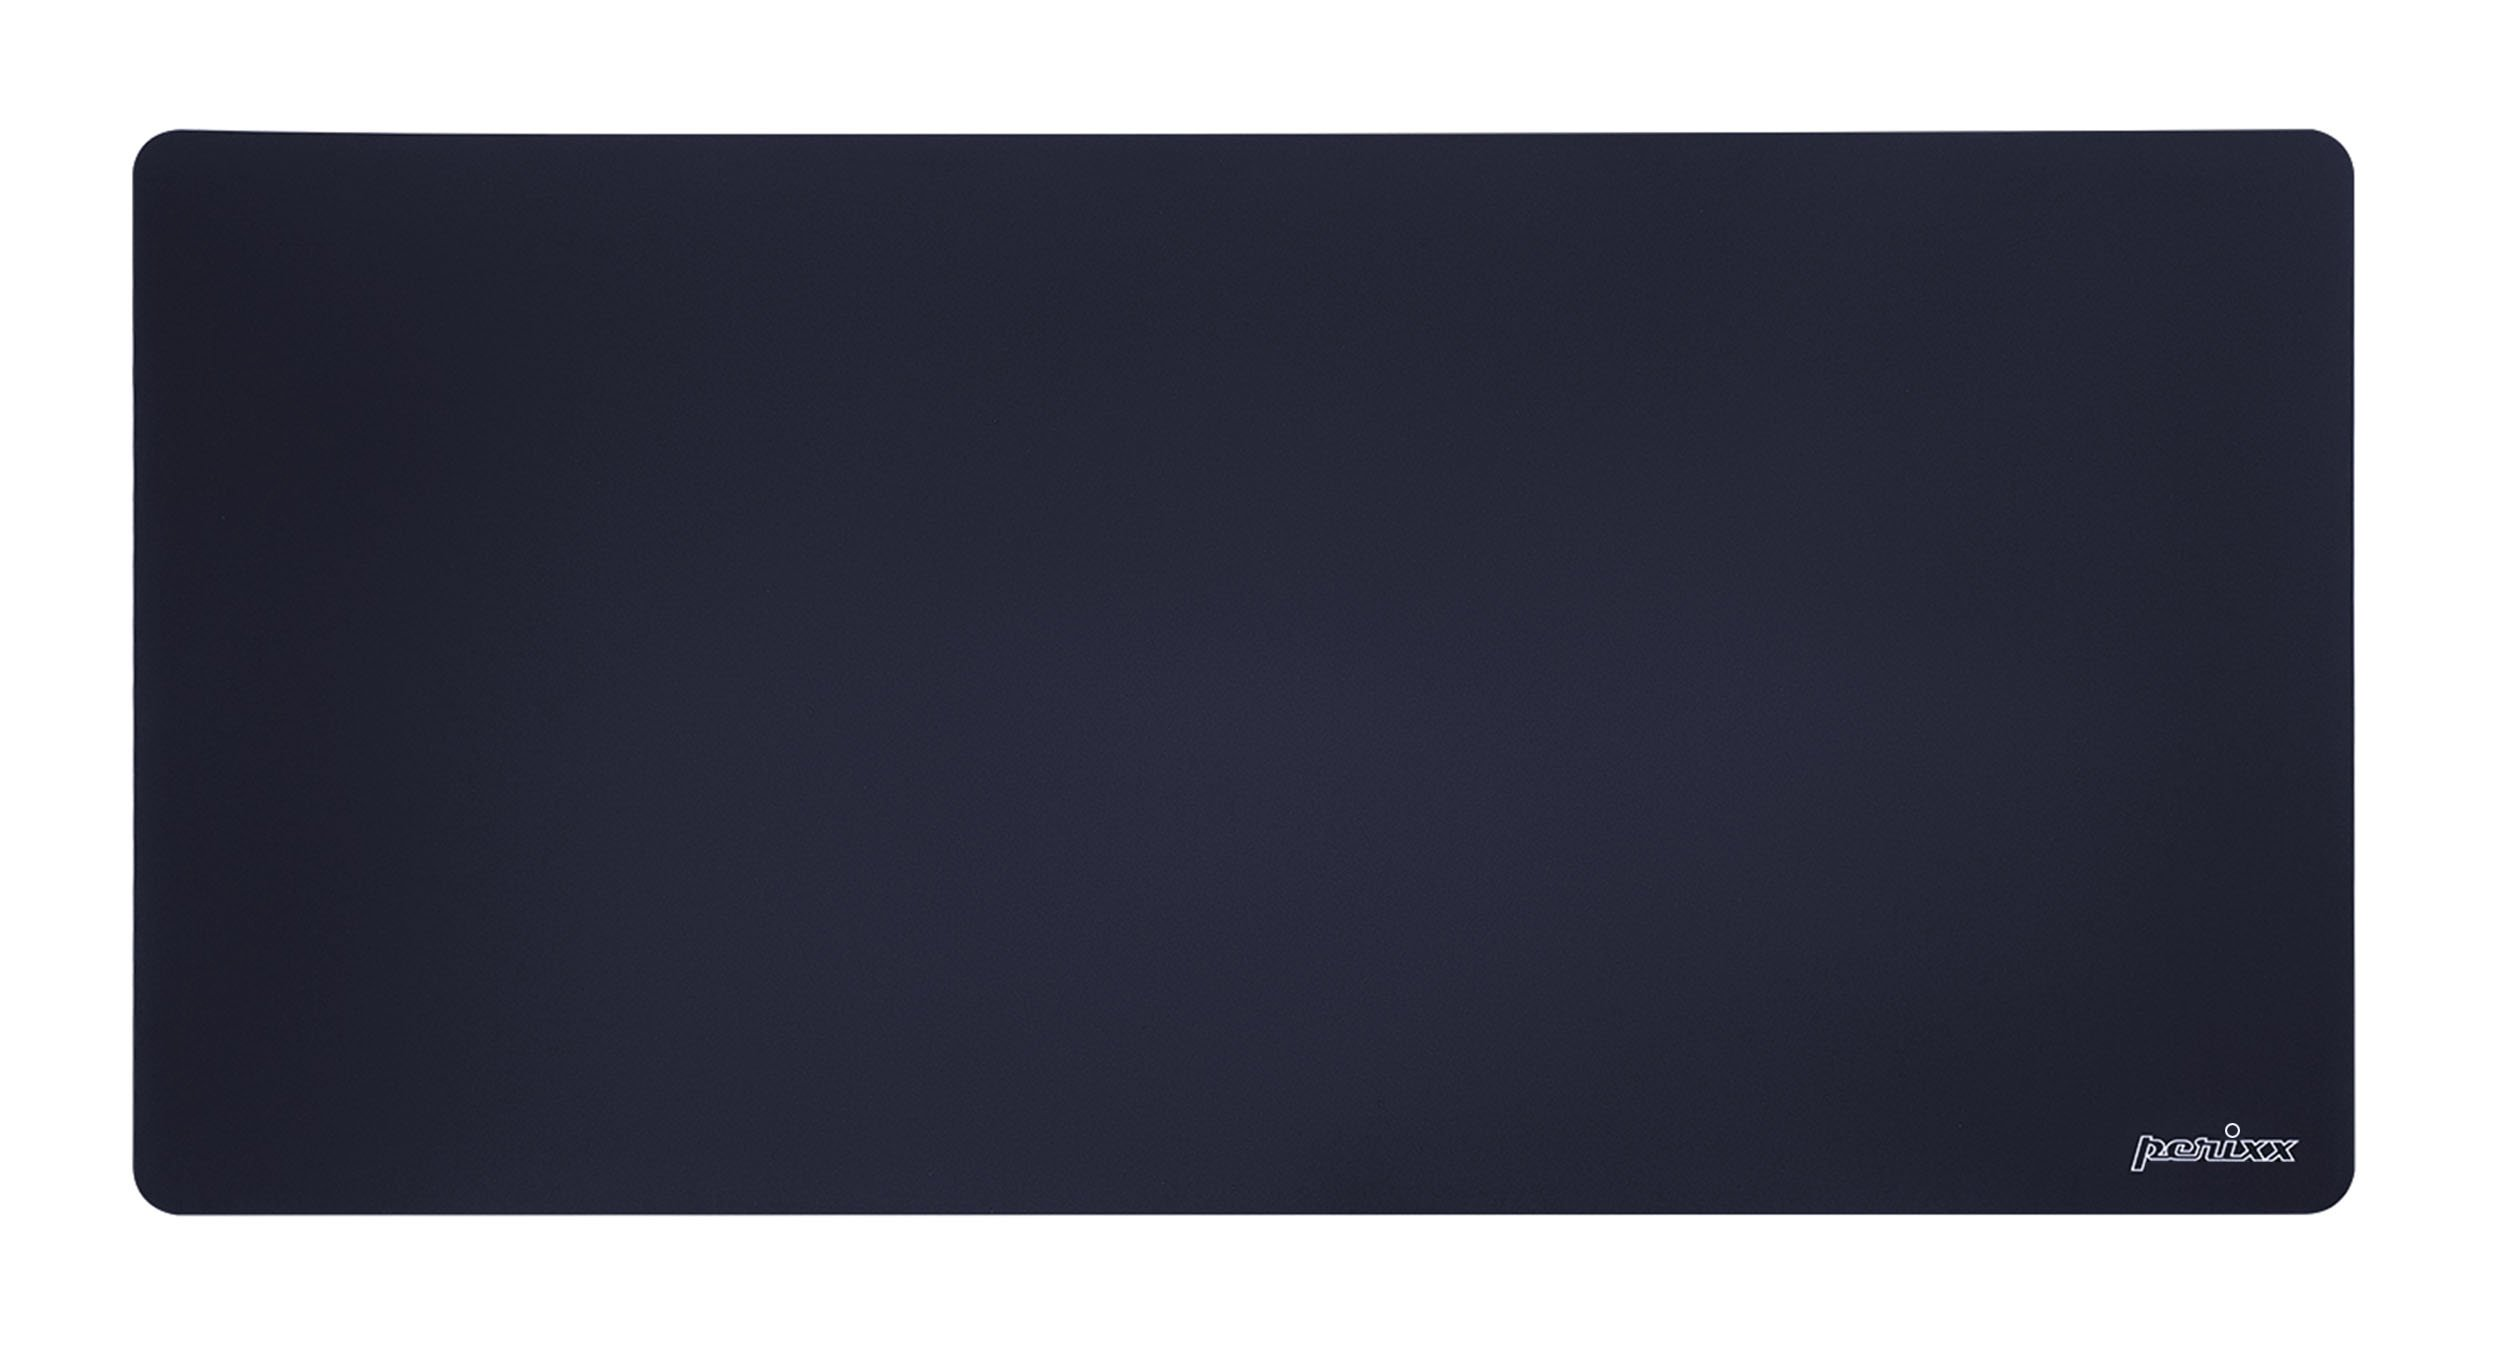 Perixx DX-1000XXL Gaming Mouse Pad - 35.43'' x 16.93'' x 0.12'' - Non-slip Rubber base - Special Treated Textured Weave